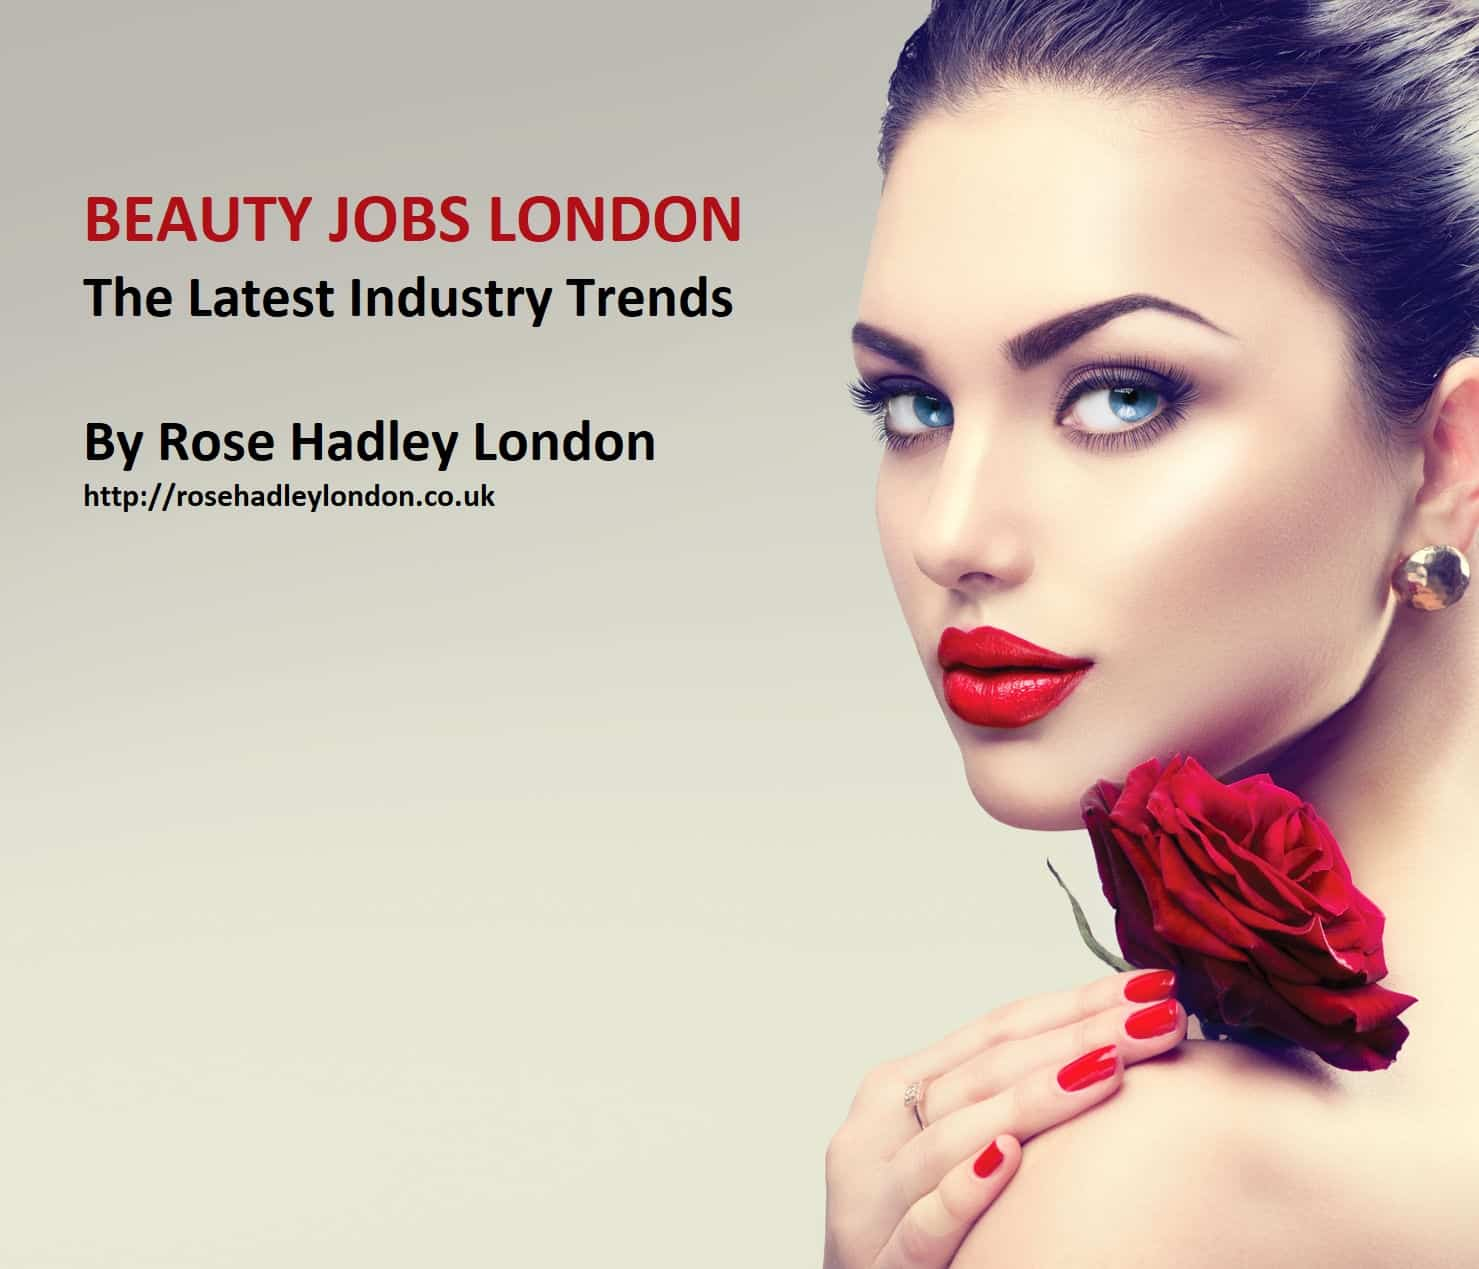 Beauty Jobs London Latest Trends - Rose Hadley - Lady with rose